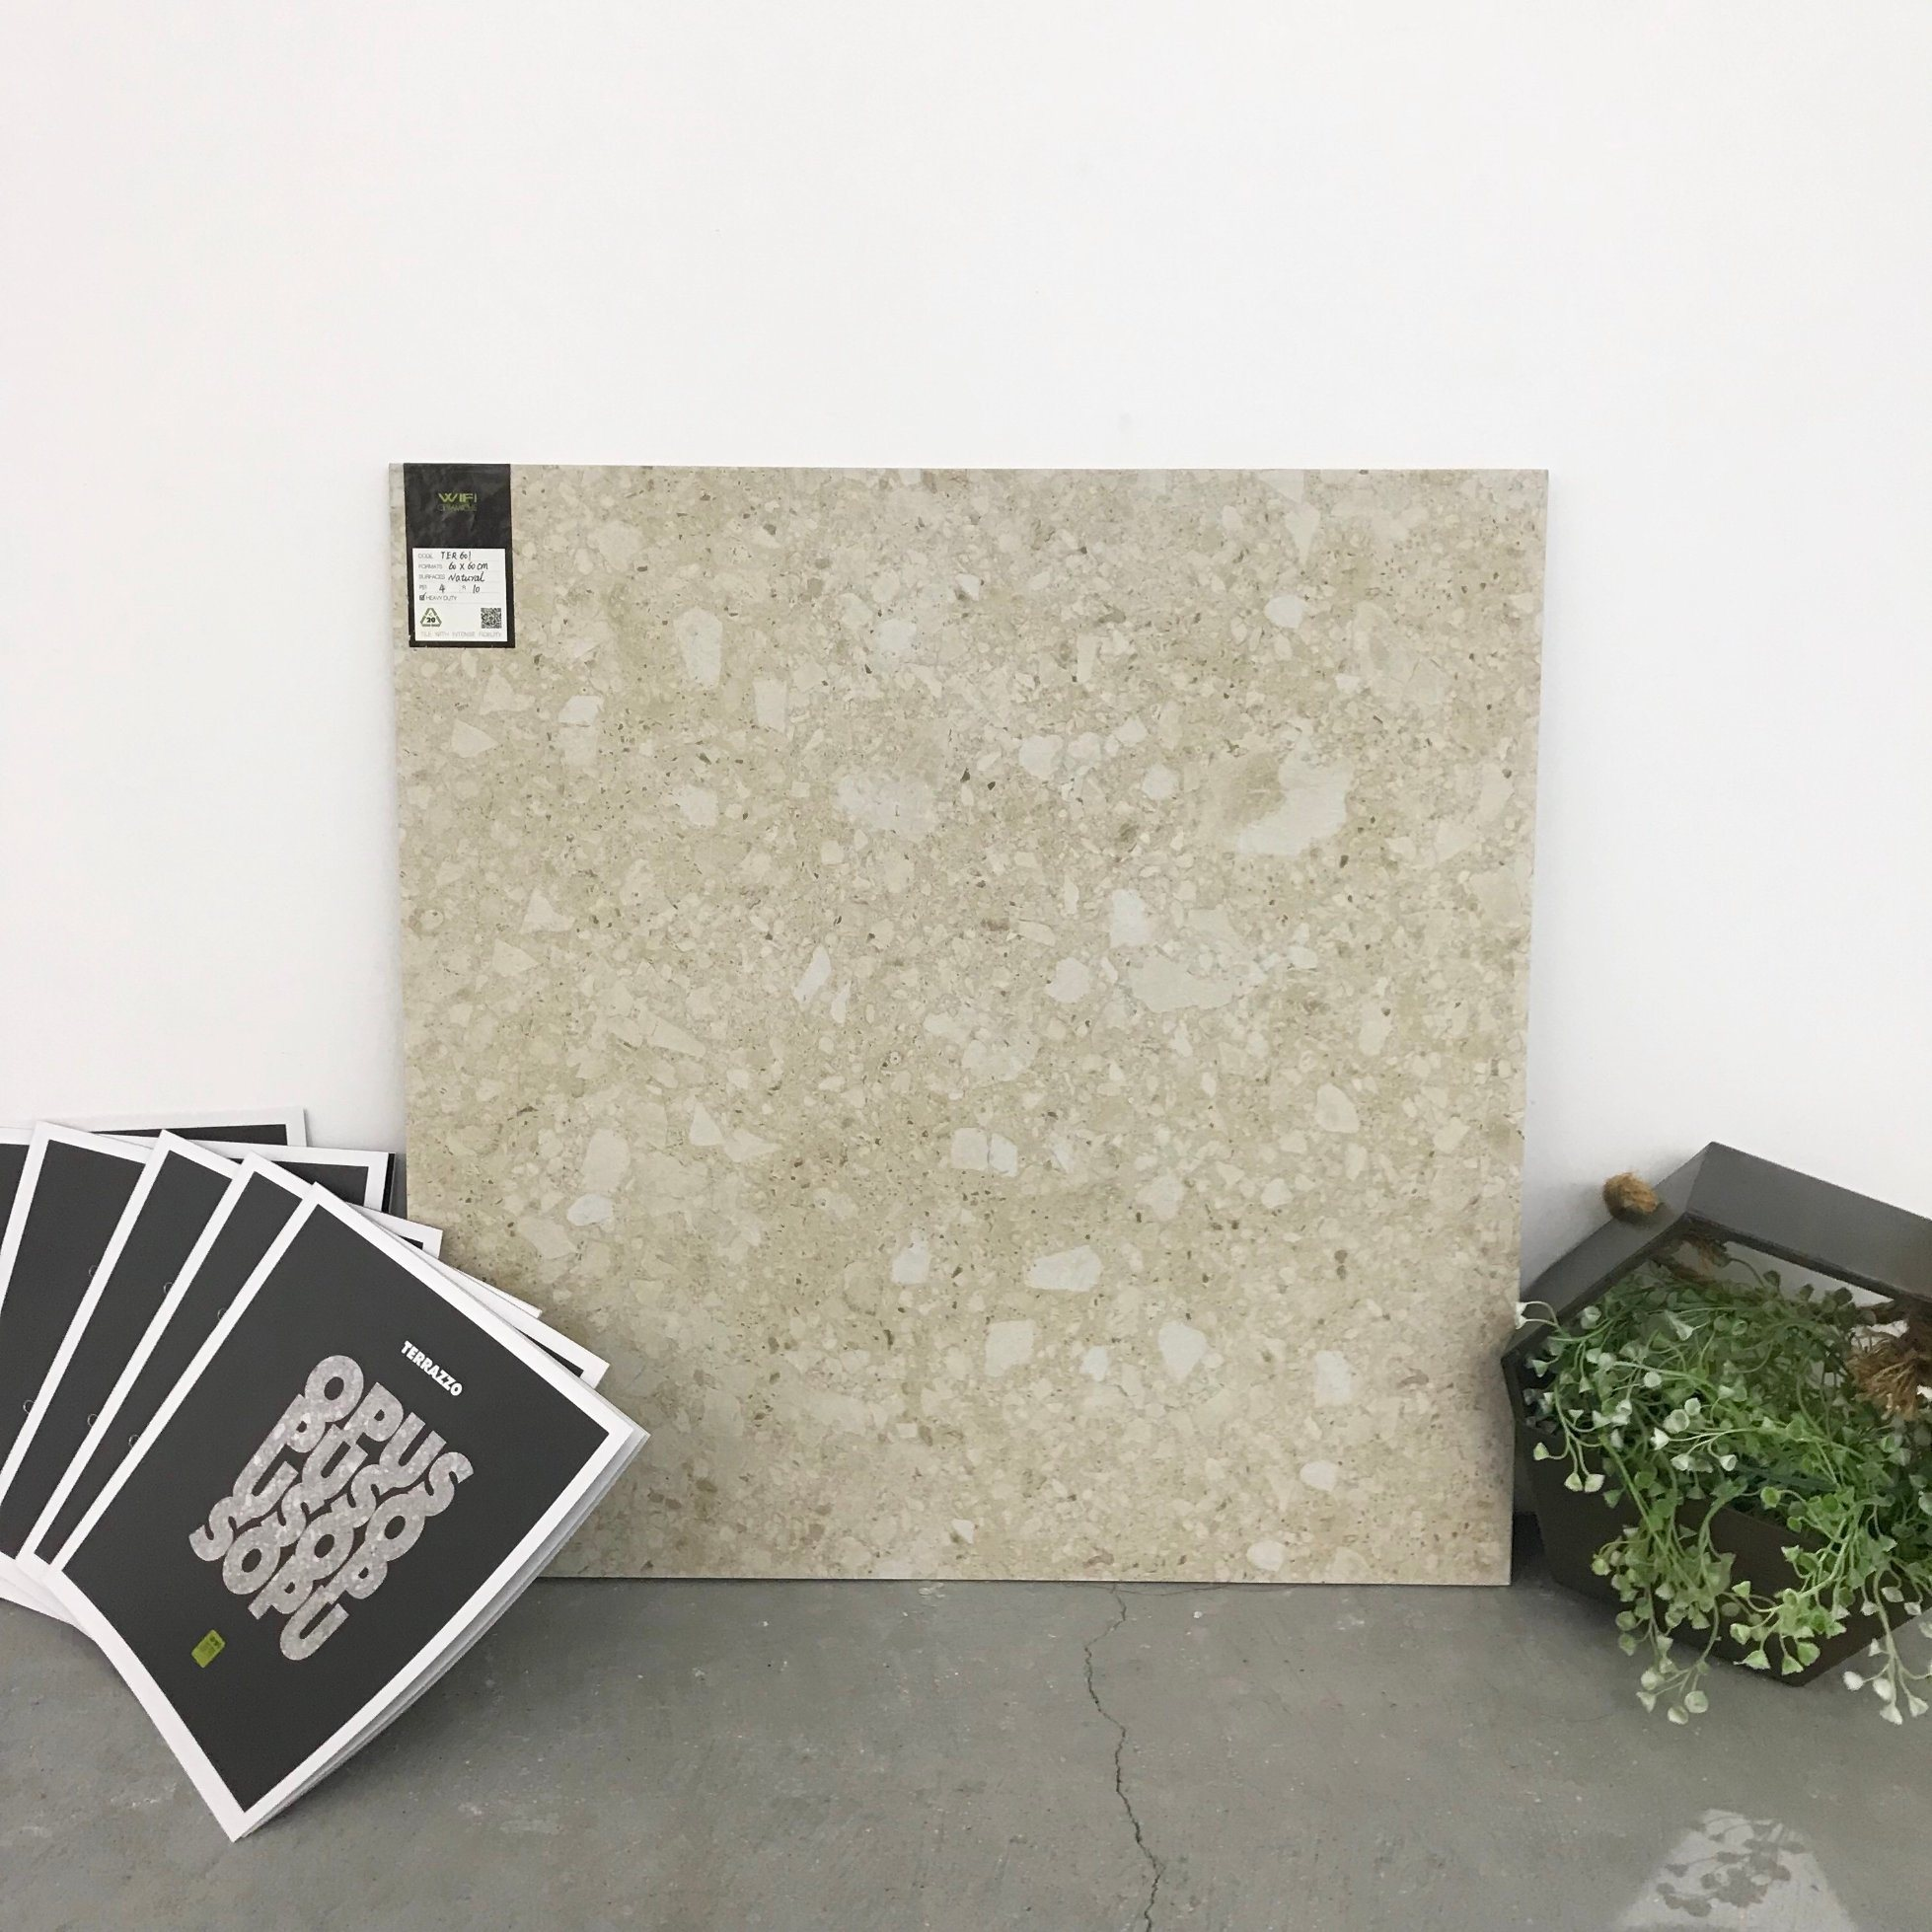 China Interior Construction Building Materials Floor and Wall Tile ...